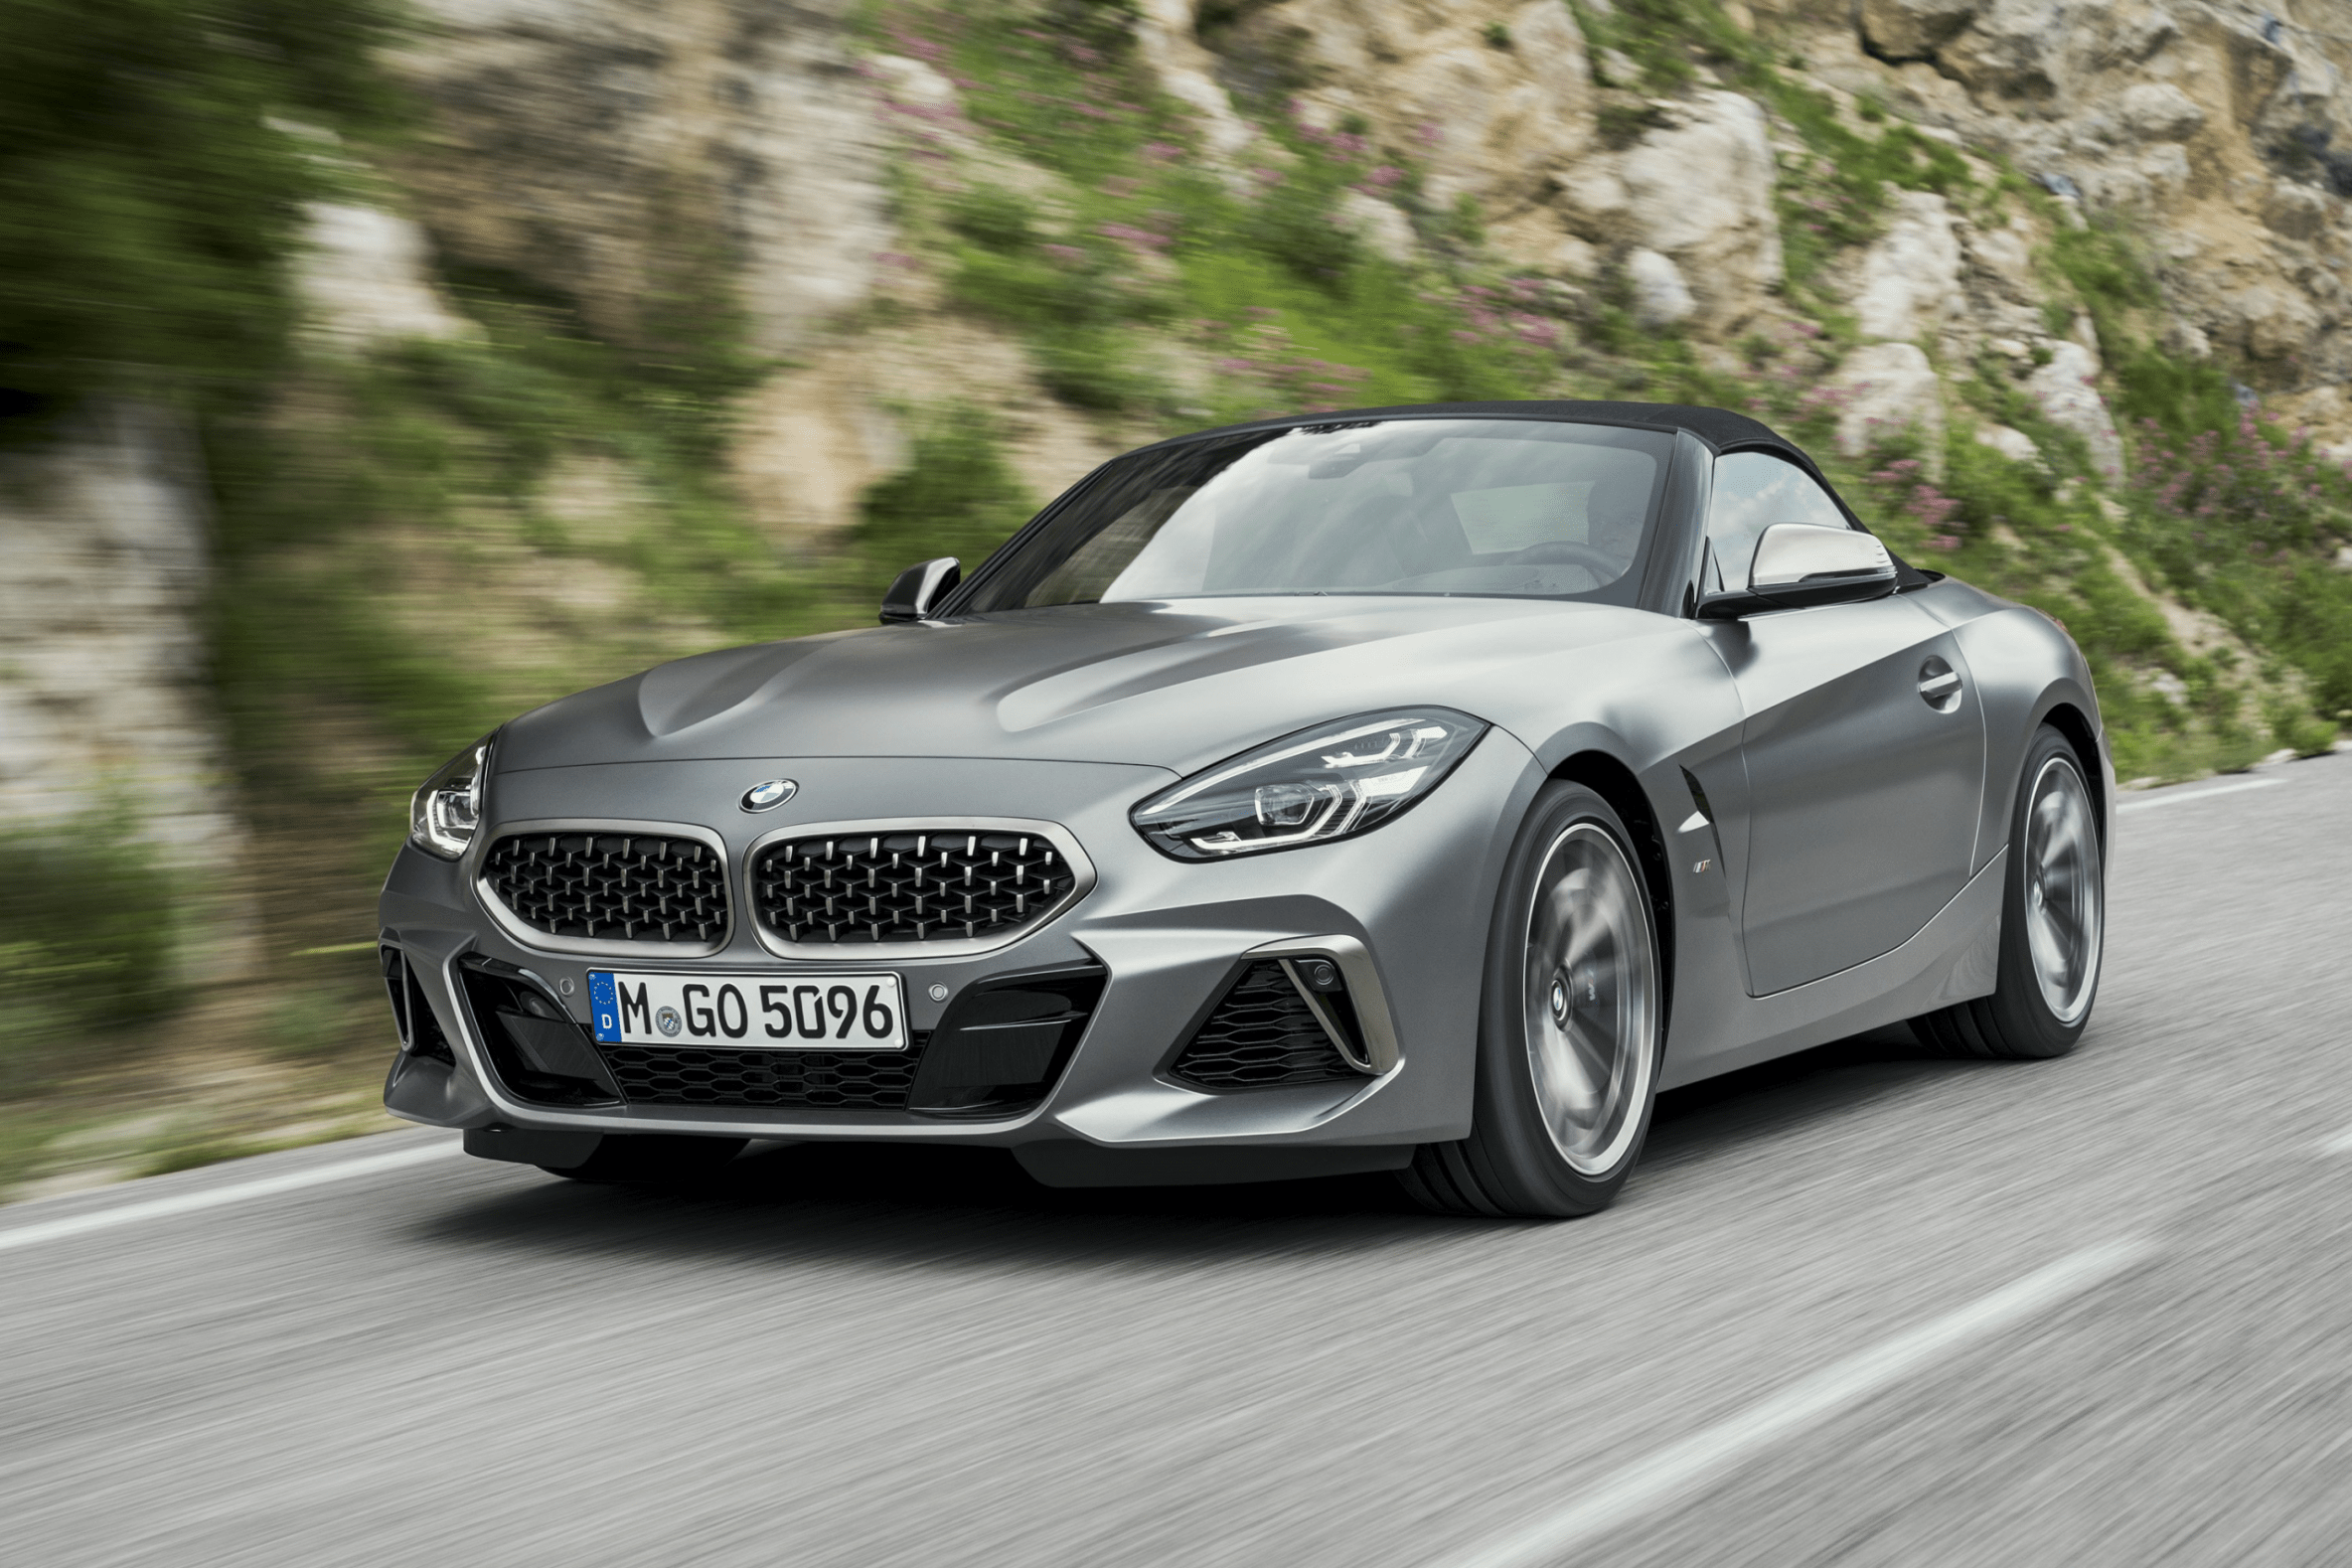 Would You Pay 5 000 More To Own A 2020 Bmw Z4 Over A 2020 In 2020 Bmw Z4 Bmw Z4 Roadster Bmw